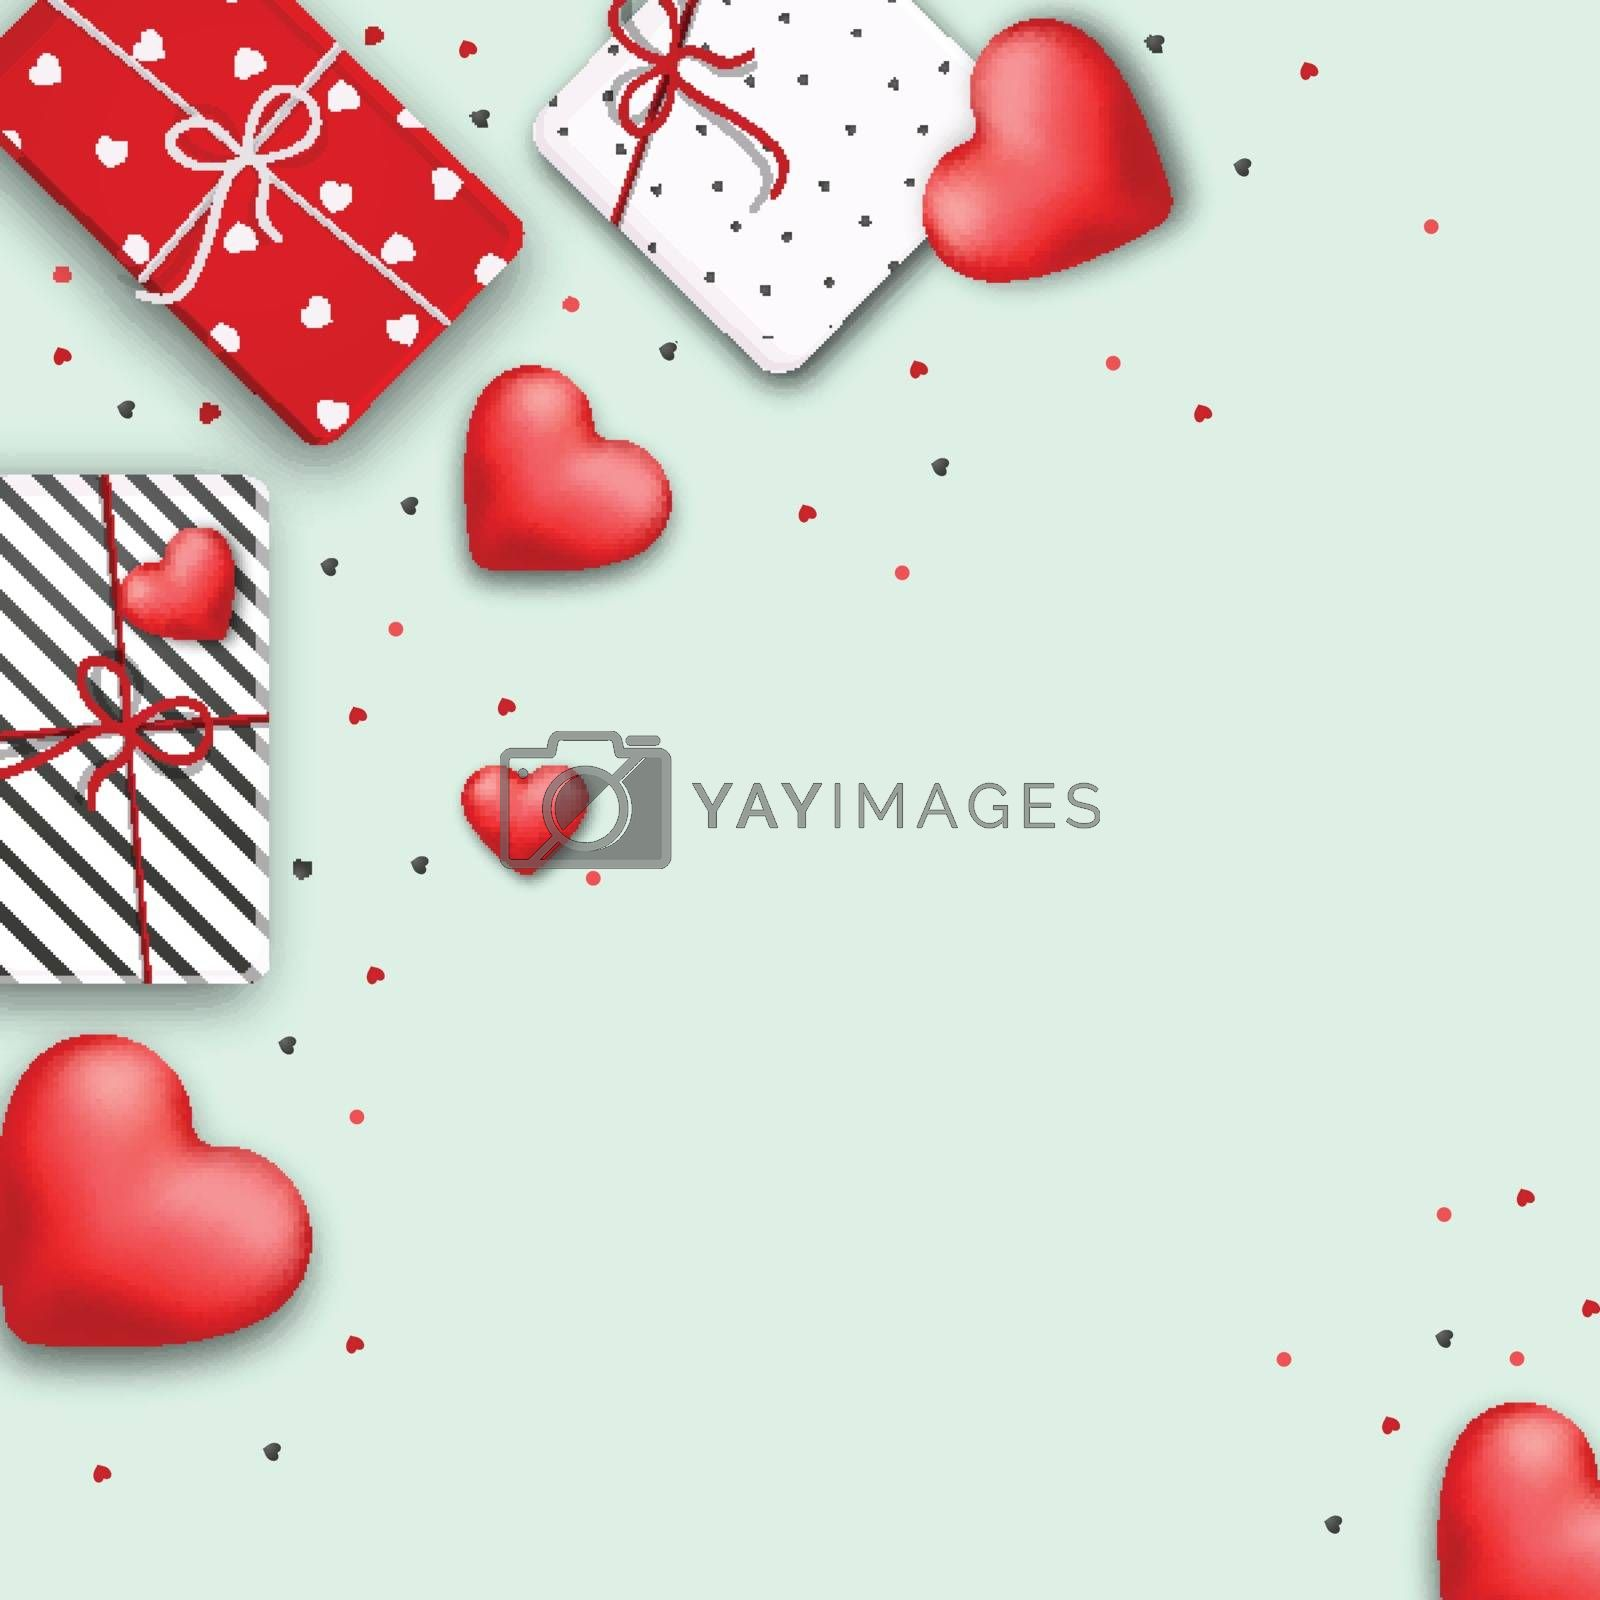 Happy Valentine's Day celebration background decorated with wrapped gift boxes and glossy red hearts.